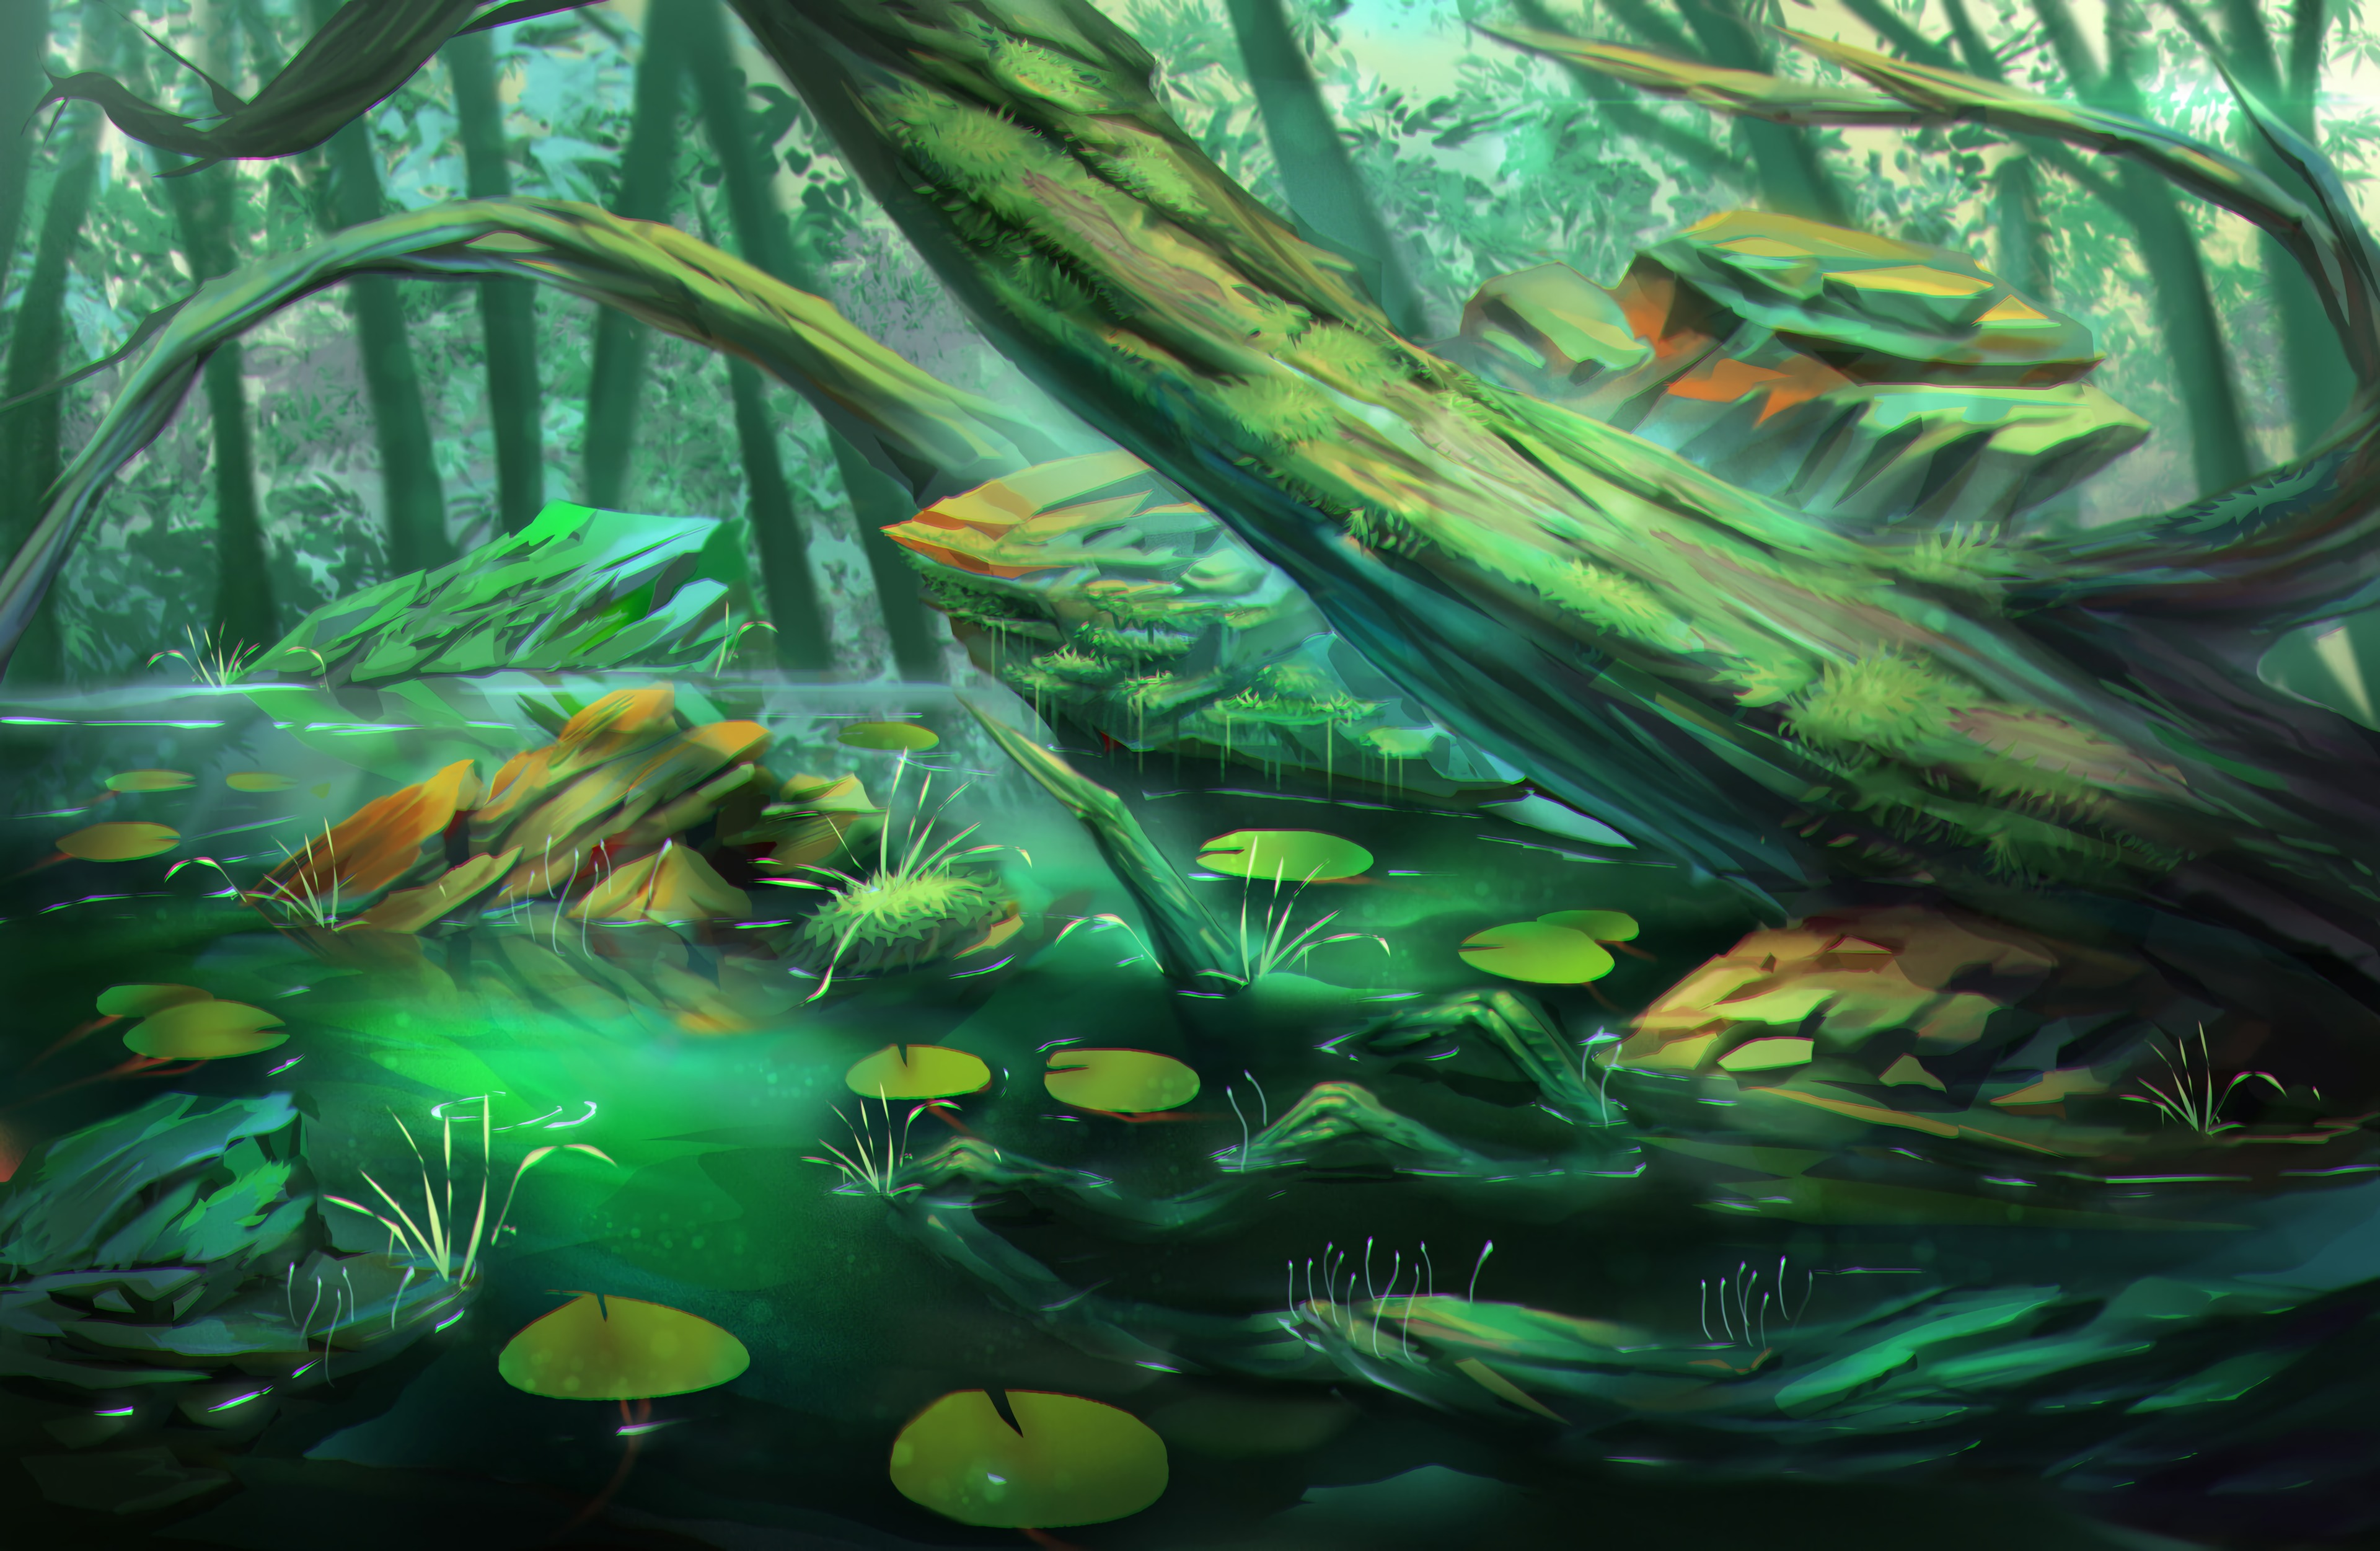 156309 download wallpaper Swamp, Trees, Stones, Forest, Art screensavers and pictures for free